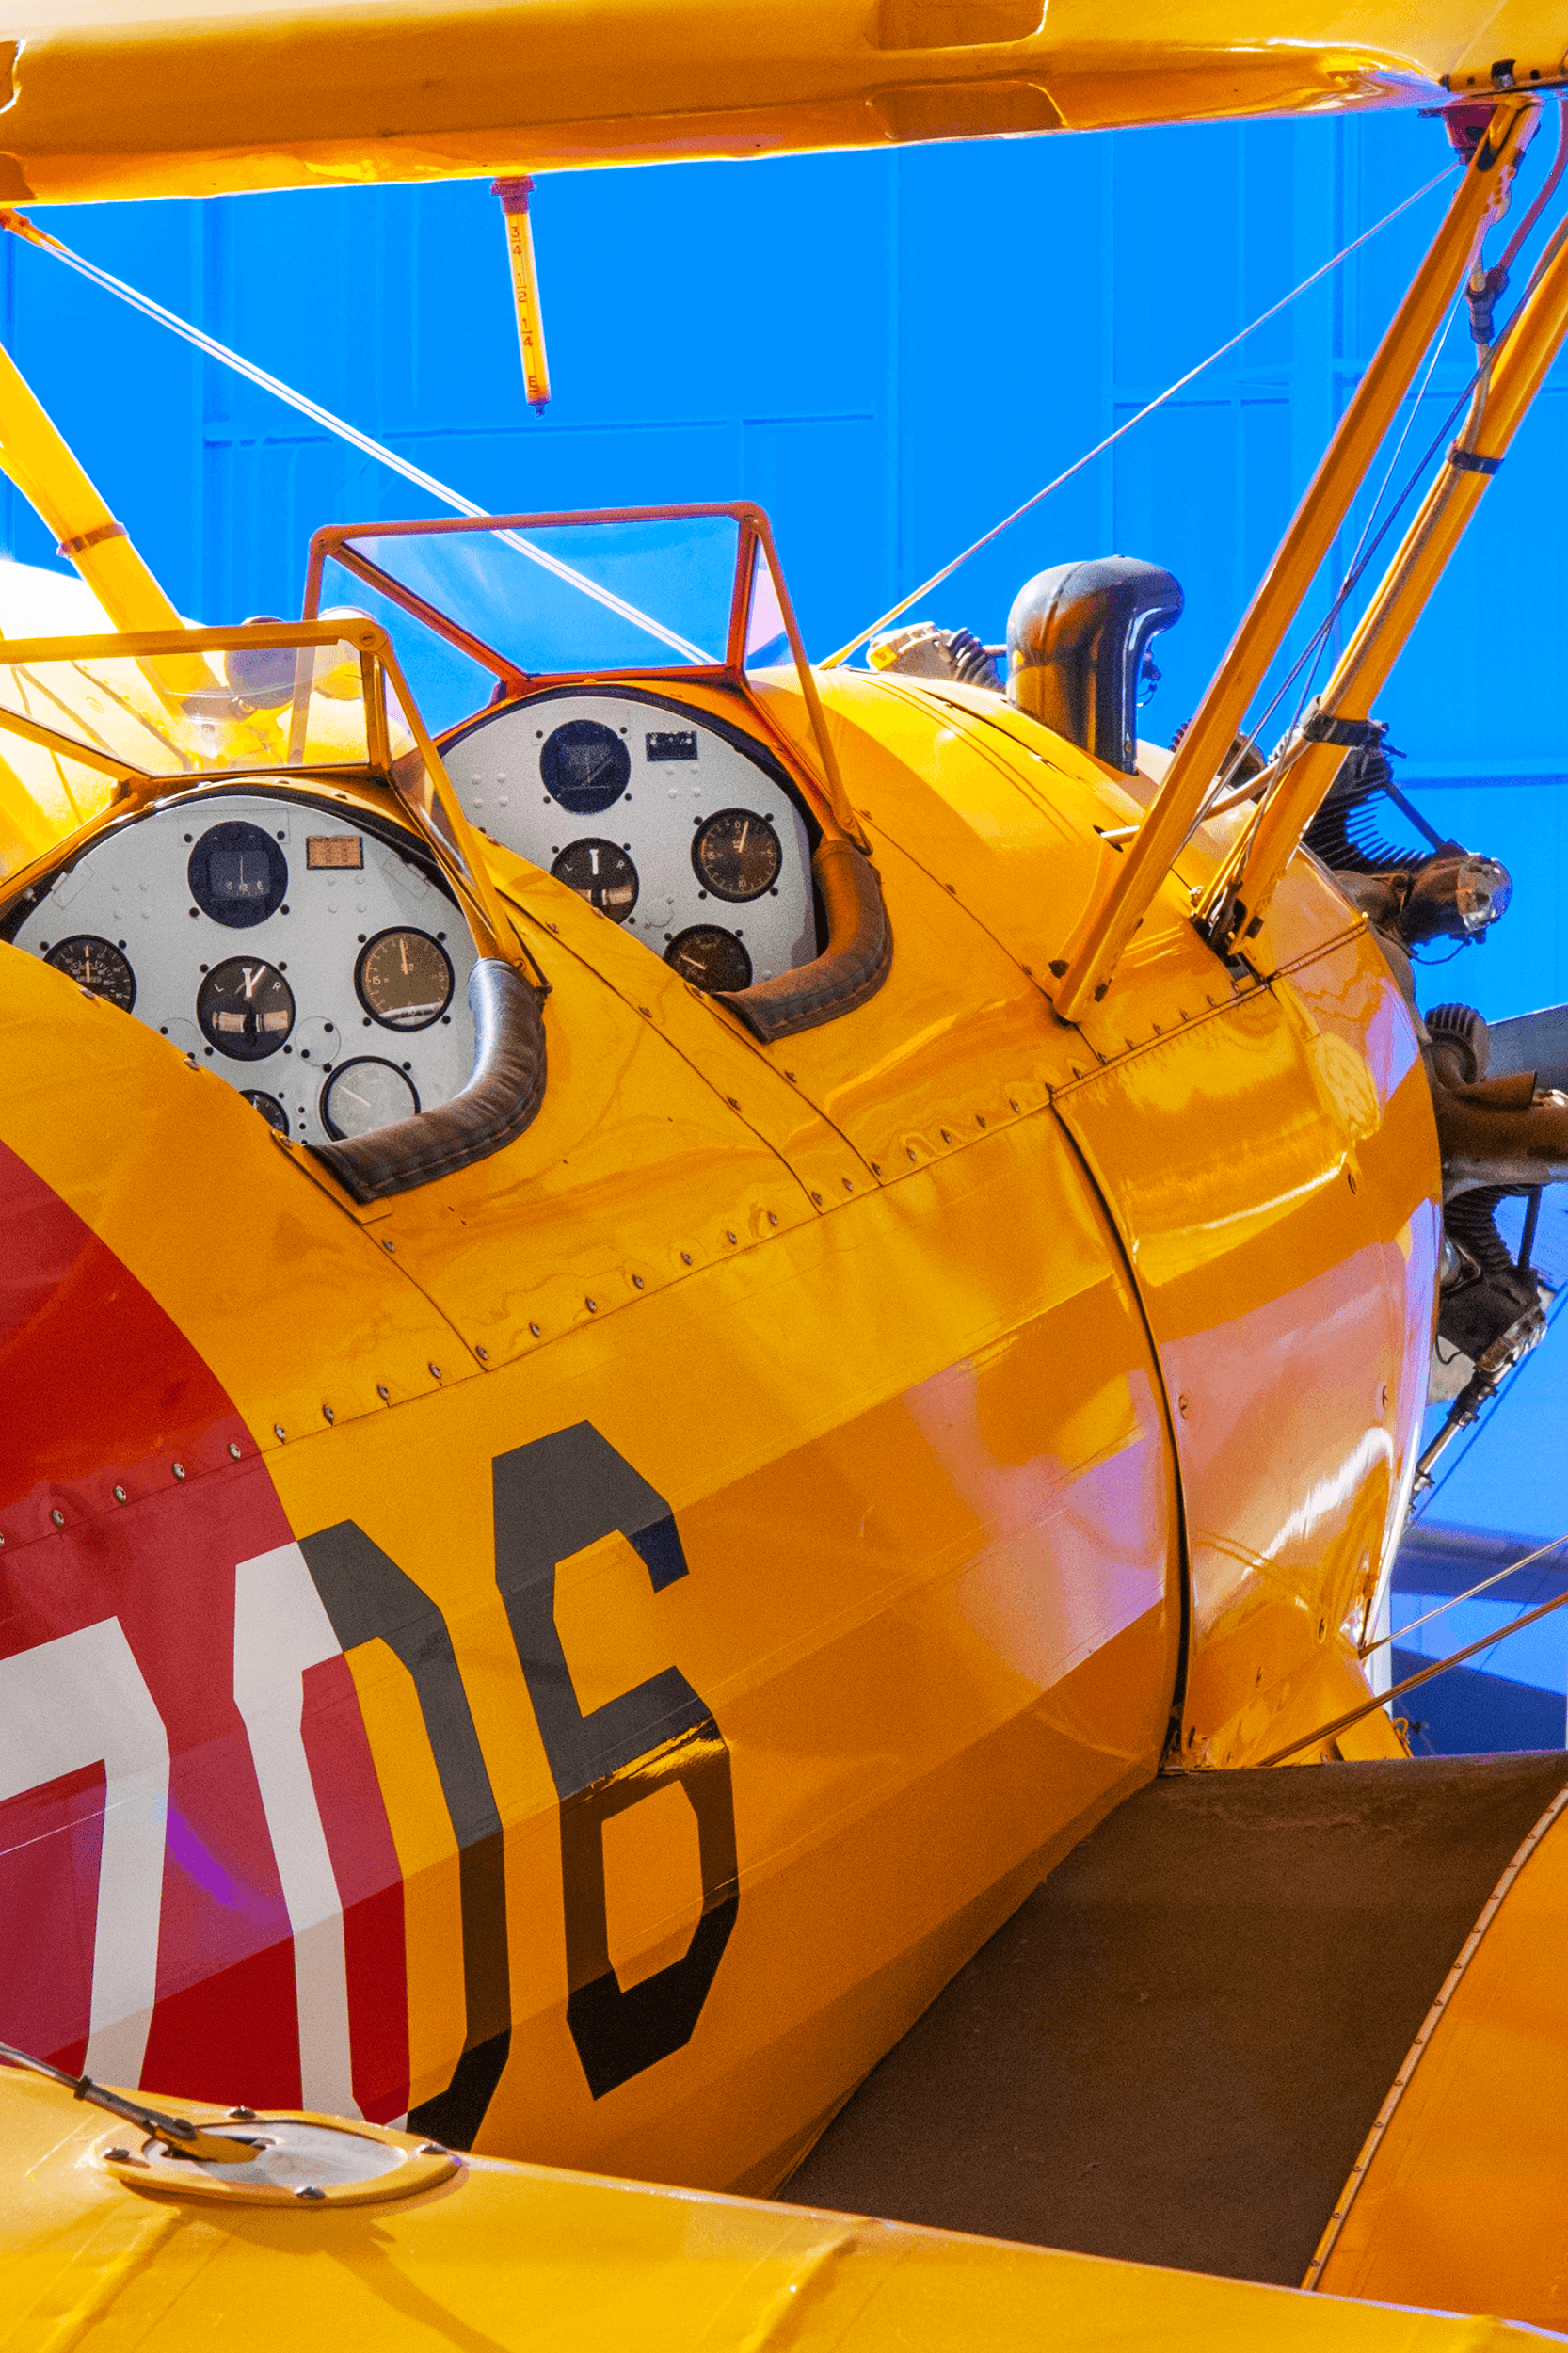 After WWII, military Kaydets sold for as little as $250. They were used as crop dusters and seeders. The aircraft was also popular at air shows, particularly for wing-walking events. Today the Kaydet is one of the most sought-after antique planes.